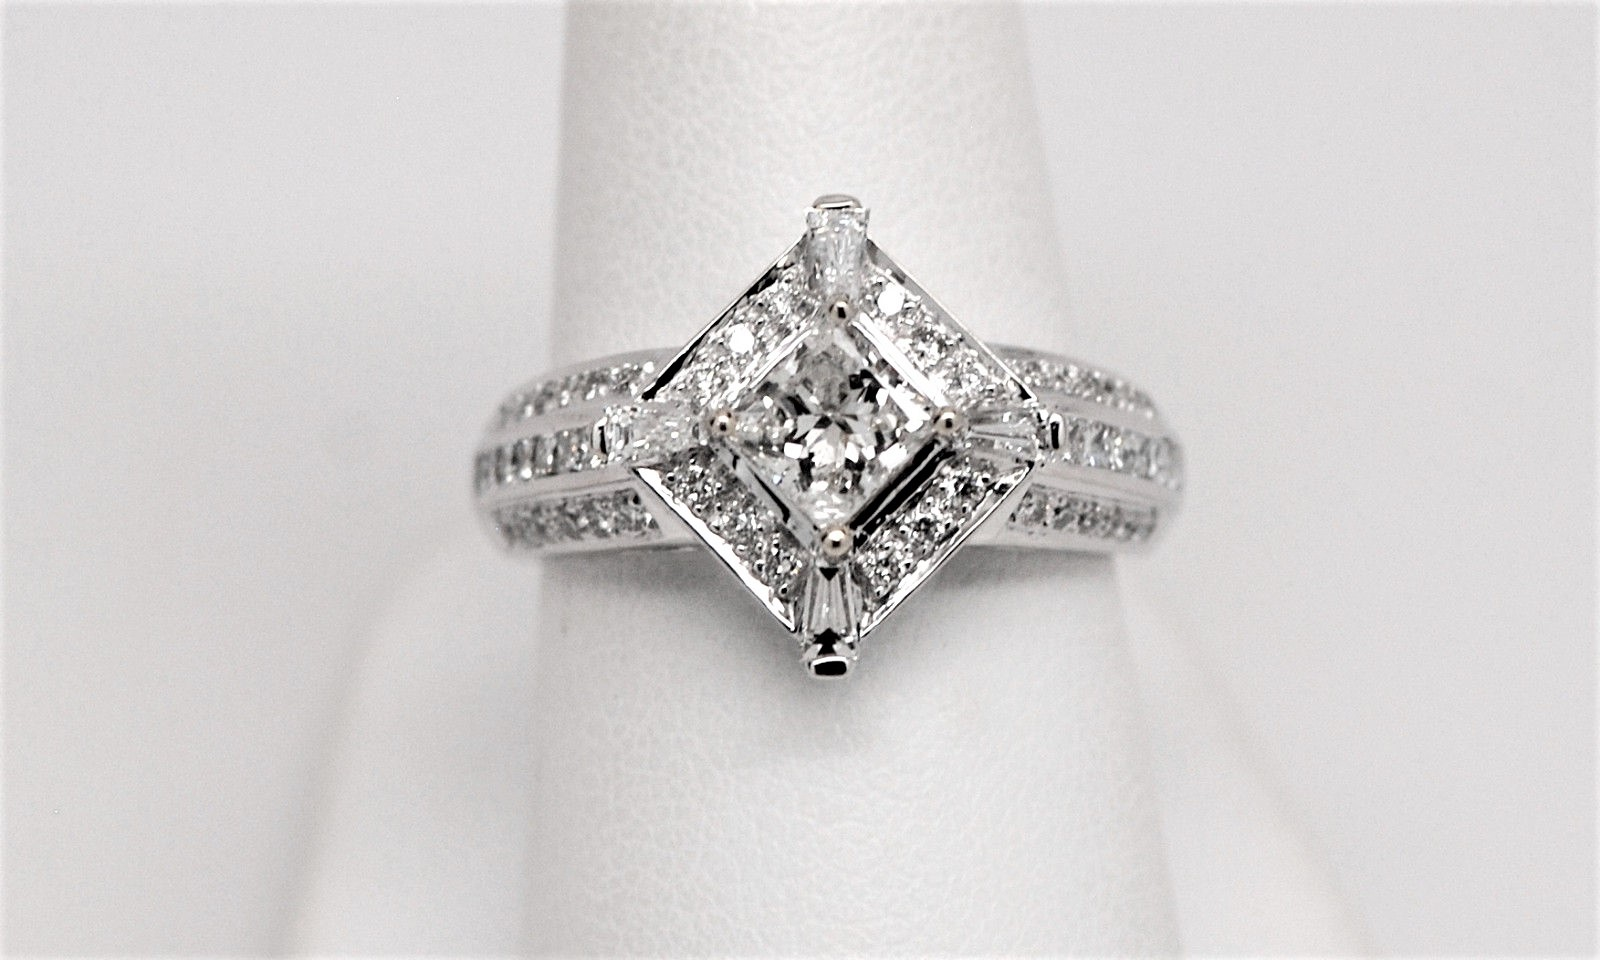 stone tapered in and white side engagement rings diamond heart shape three with baguette ring stones center platinum